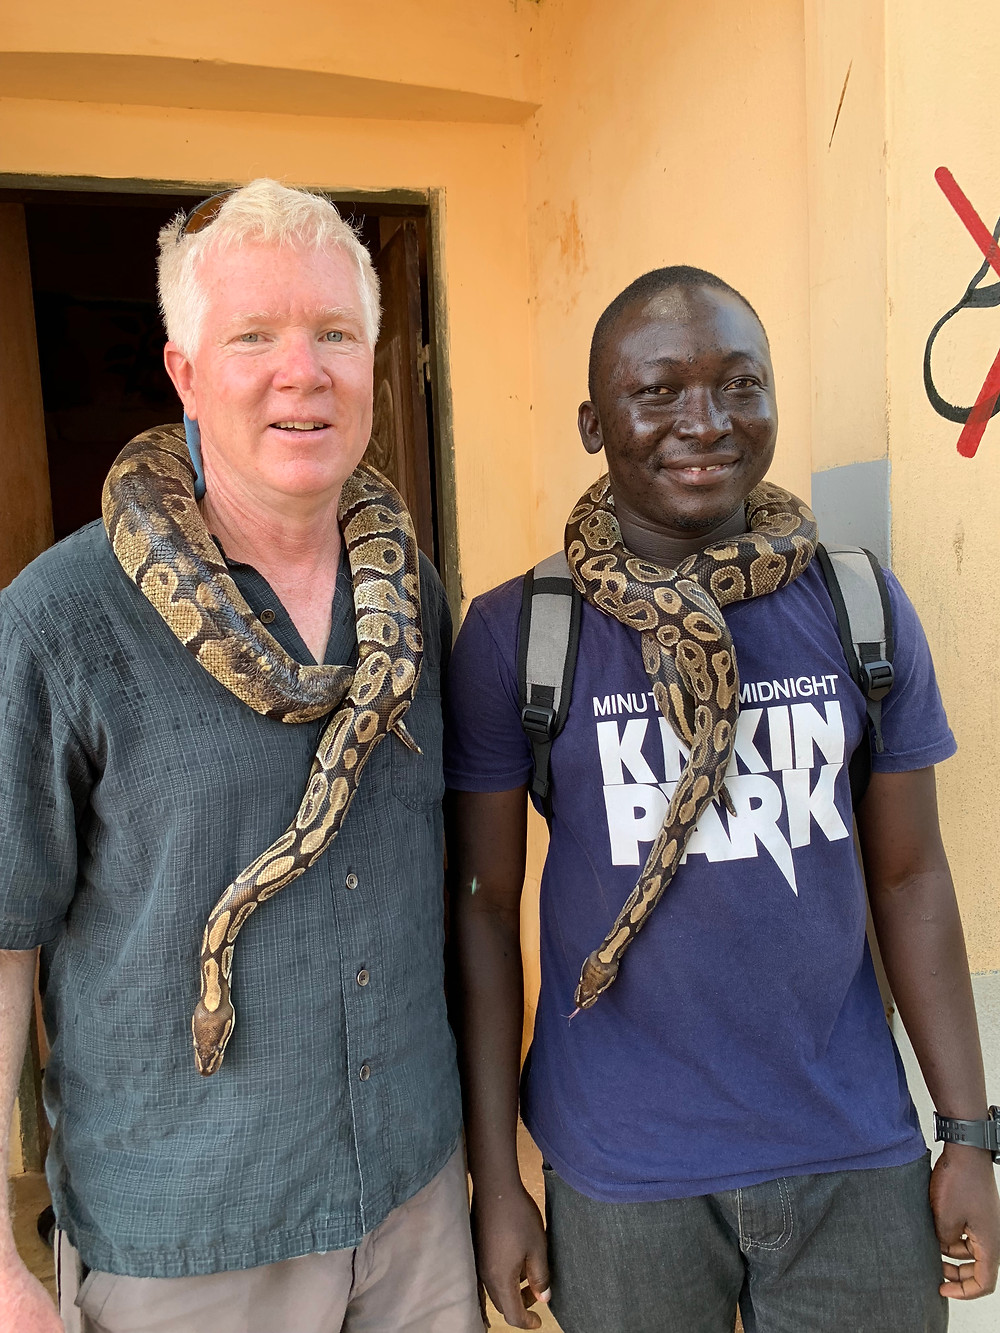 A very important voodoo site.  About 80 snakes in the temple and who they wander away the people bring them back.  Voodoo is considered different than black magic that is used  for evil.  They say Benin is 50% Christian, 50% Muslim and 100% animist